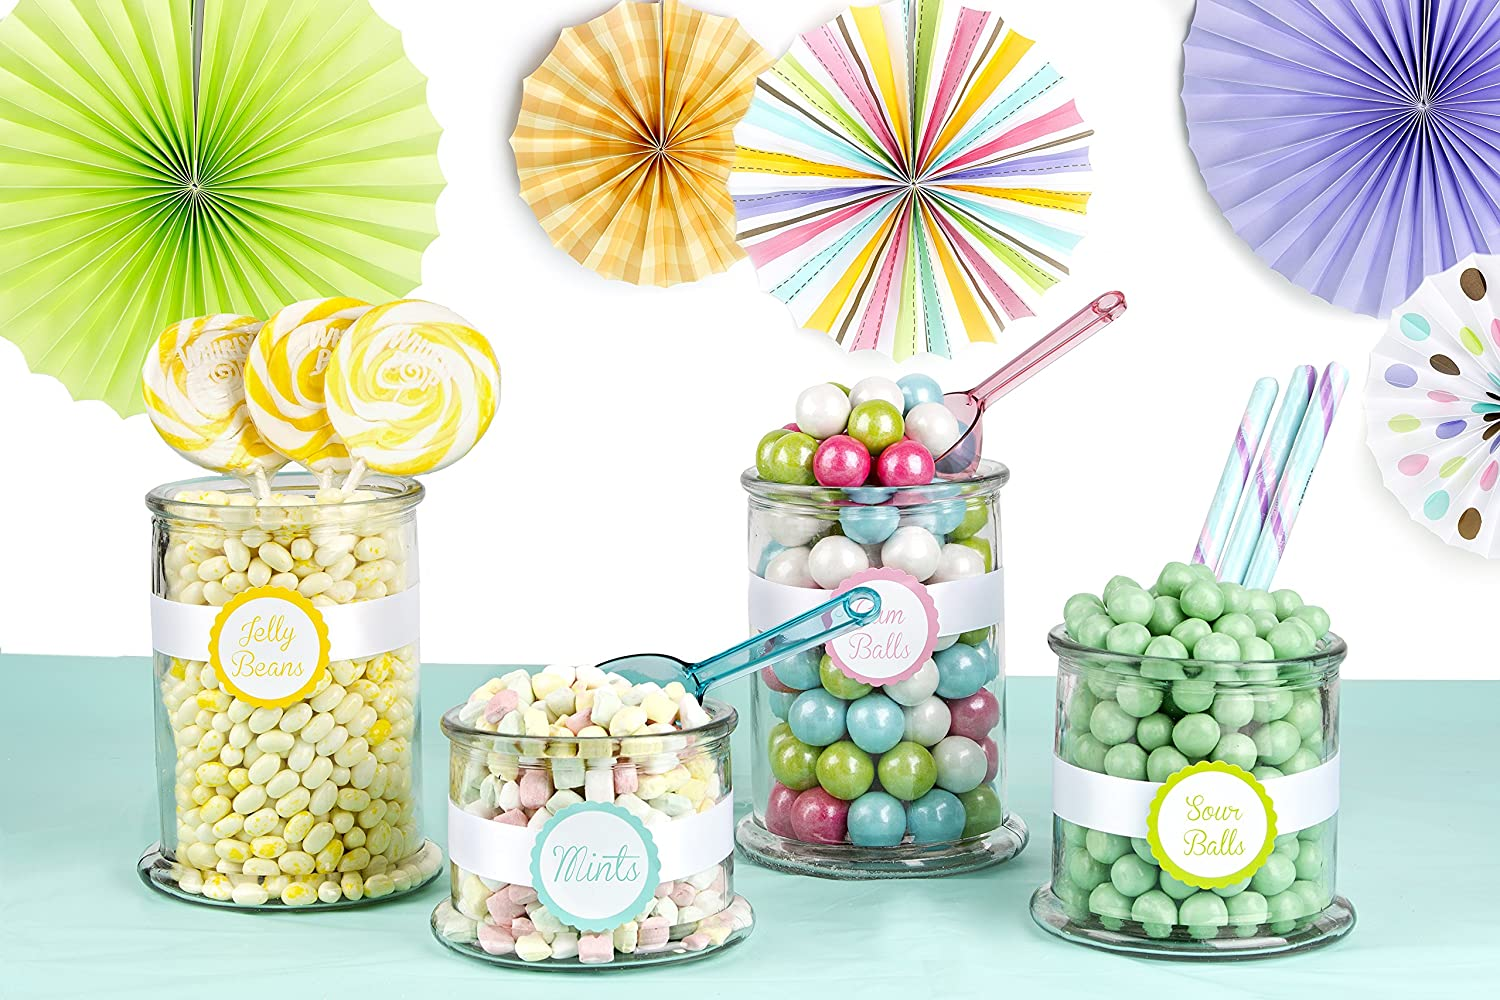 Amazon.com : DIY Baby Shower Candy Buffet Kit - Pastel Colors - Feeds 20-25  People - Oh! Nuts : Grocery & Gourmet Food